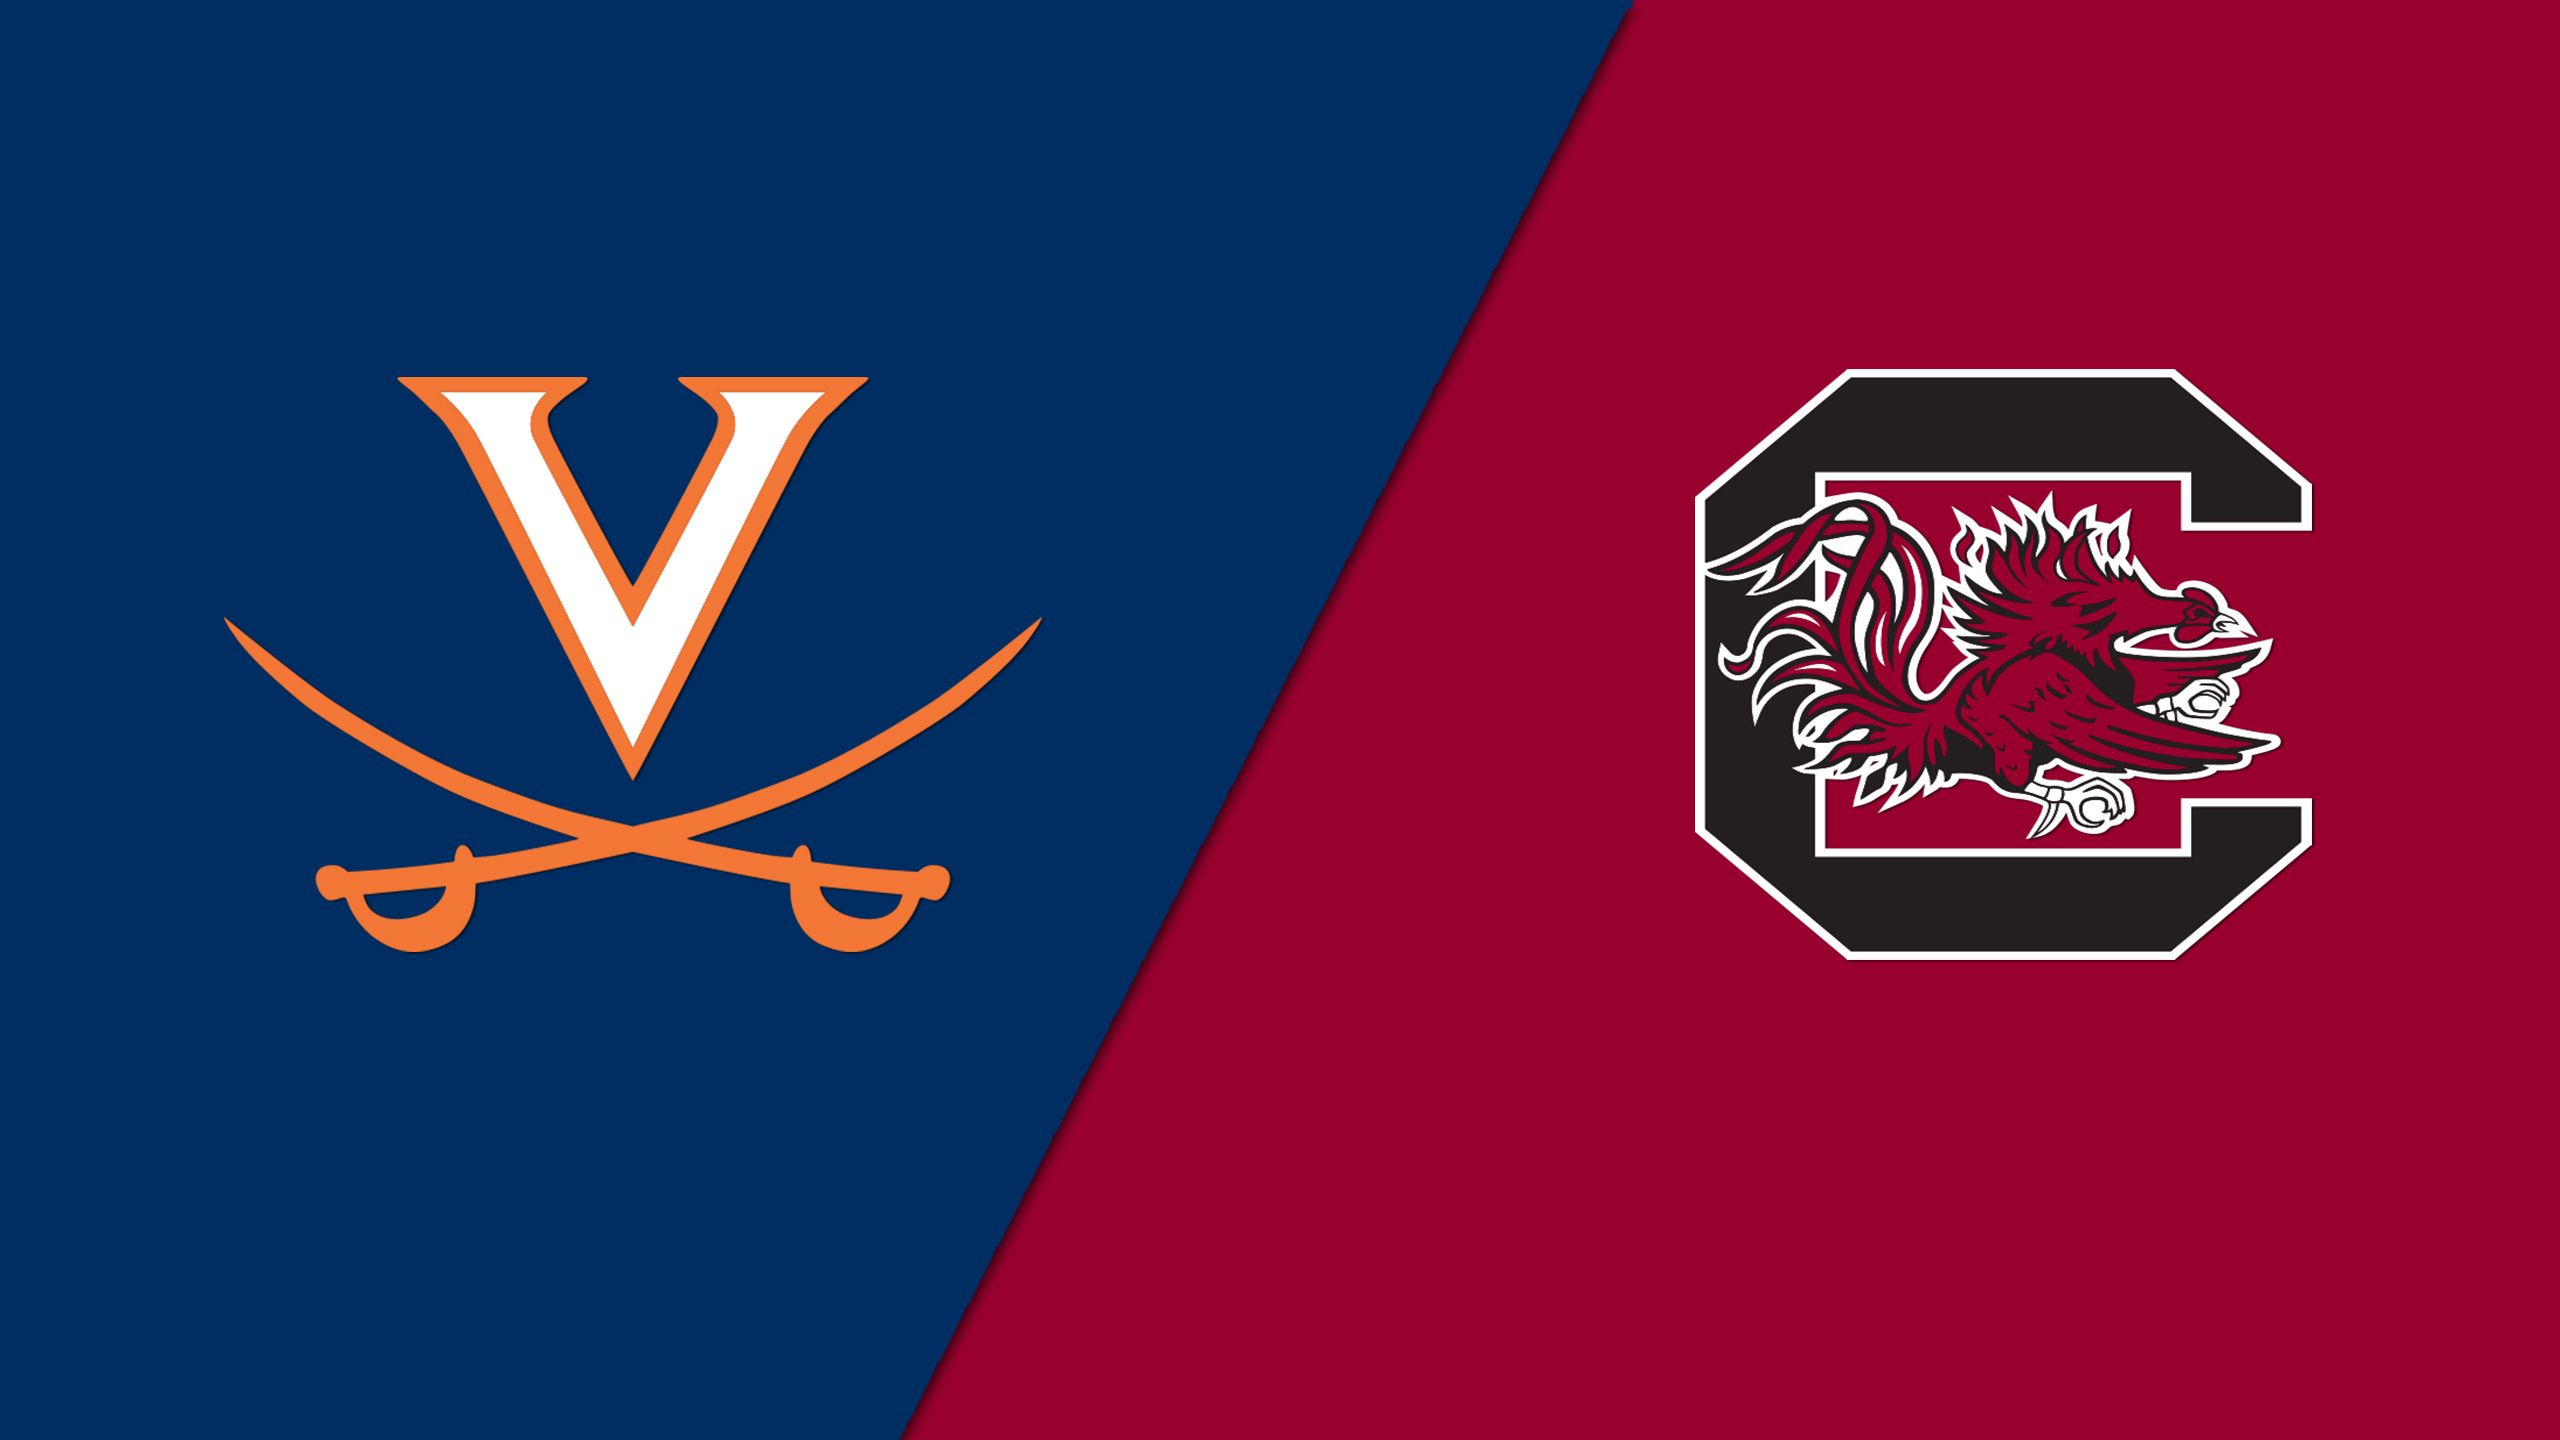 #10 Virginia vs. #2 South Carolina (Second Round) (NCAA Women's Basketball Championship)